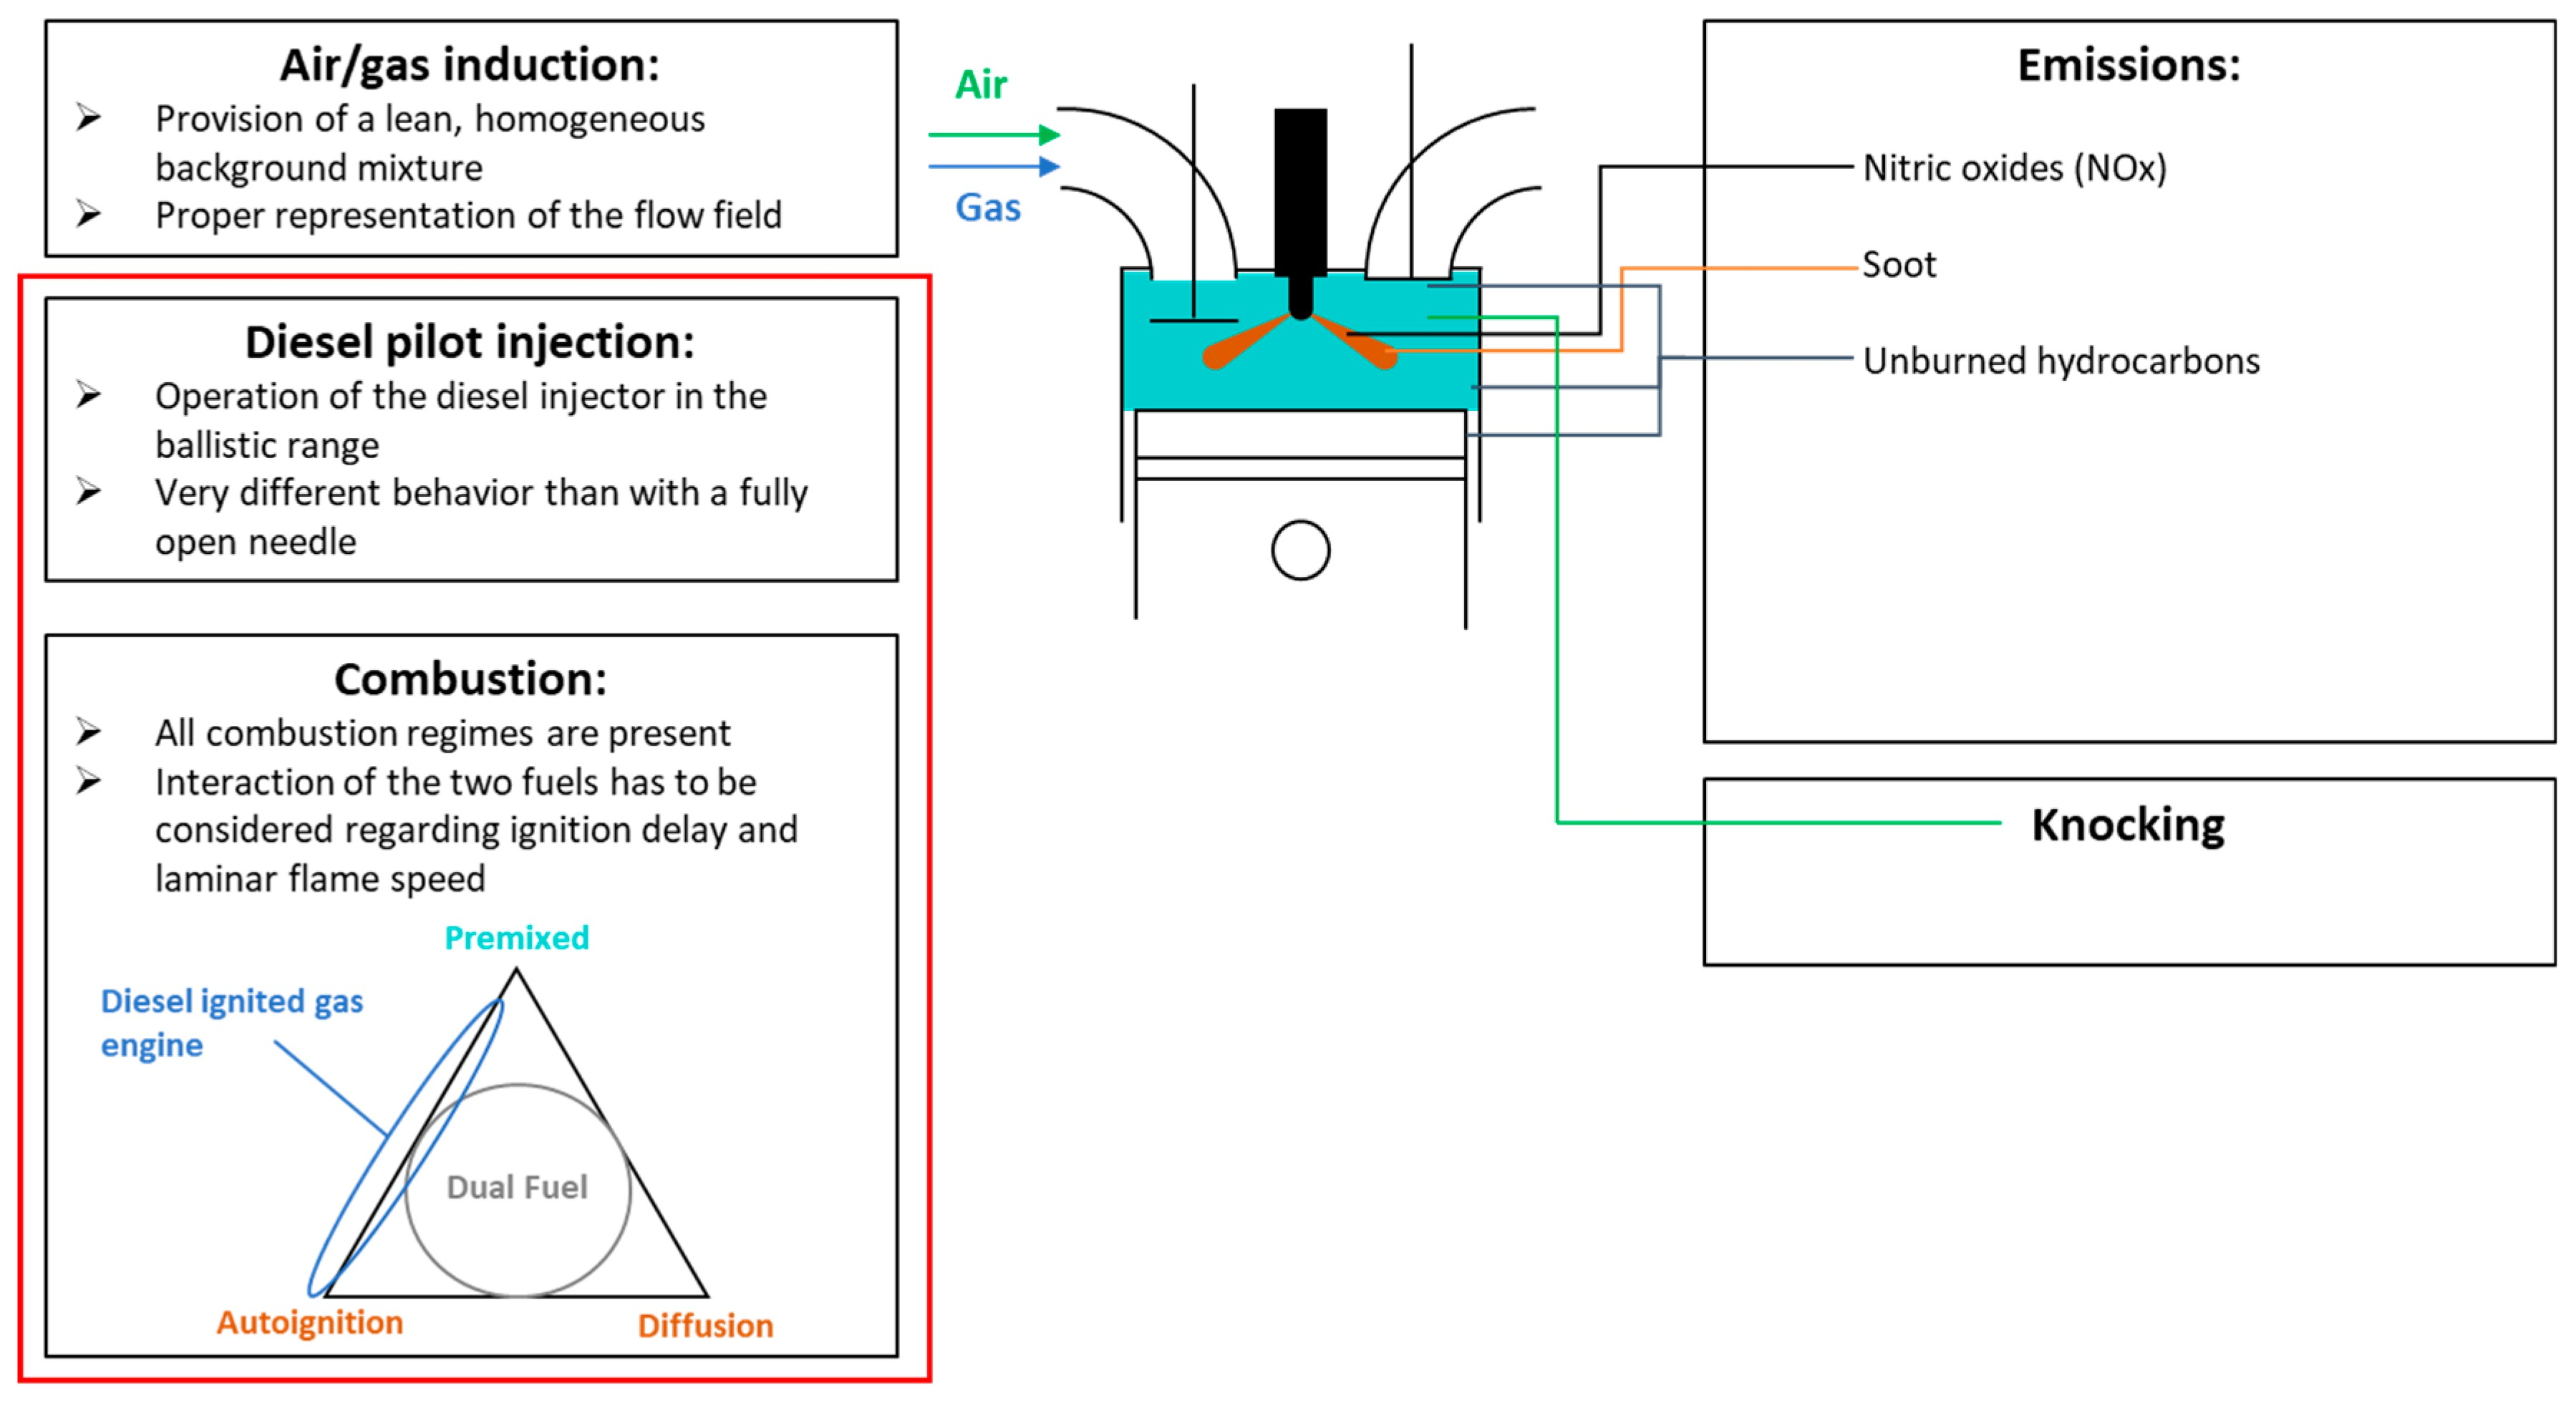 Single Cylinder Engine Diagram Energies Free Full Text Of Single Cylinder Engine Diagram